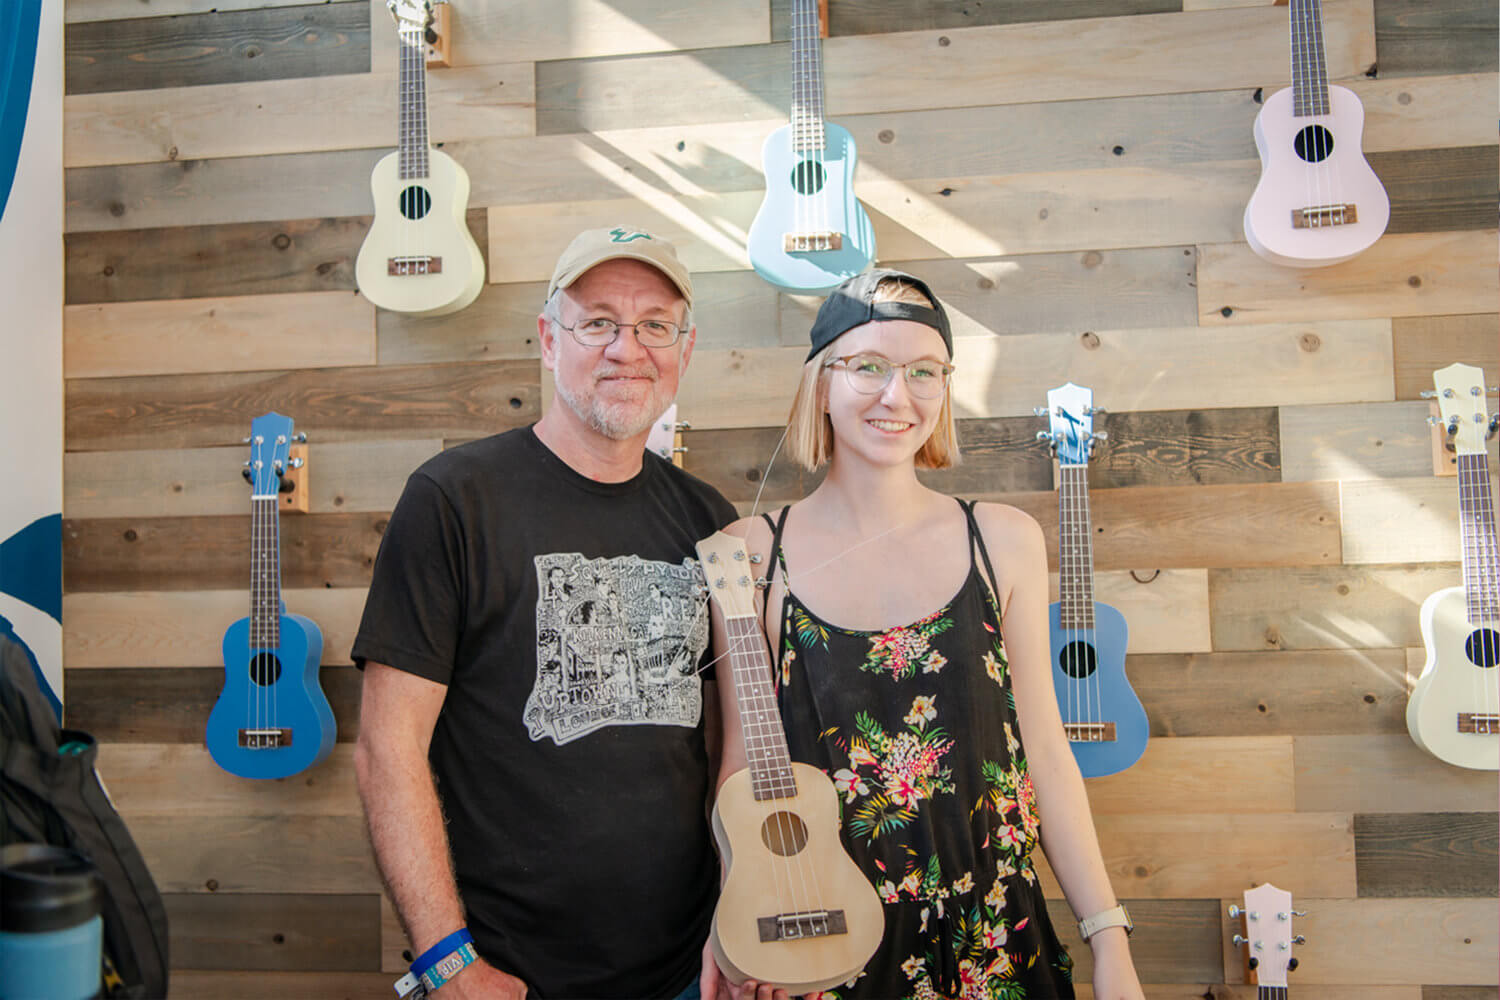 Fans were able to perform small acts of good, which included building ukuleles for music education, packaging food items for hunger, and writing inspirational notes for at-risk youth.